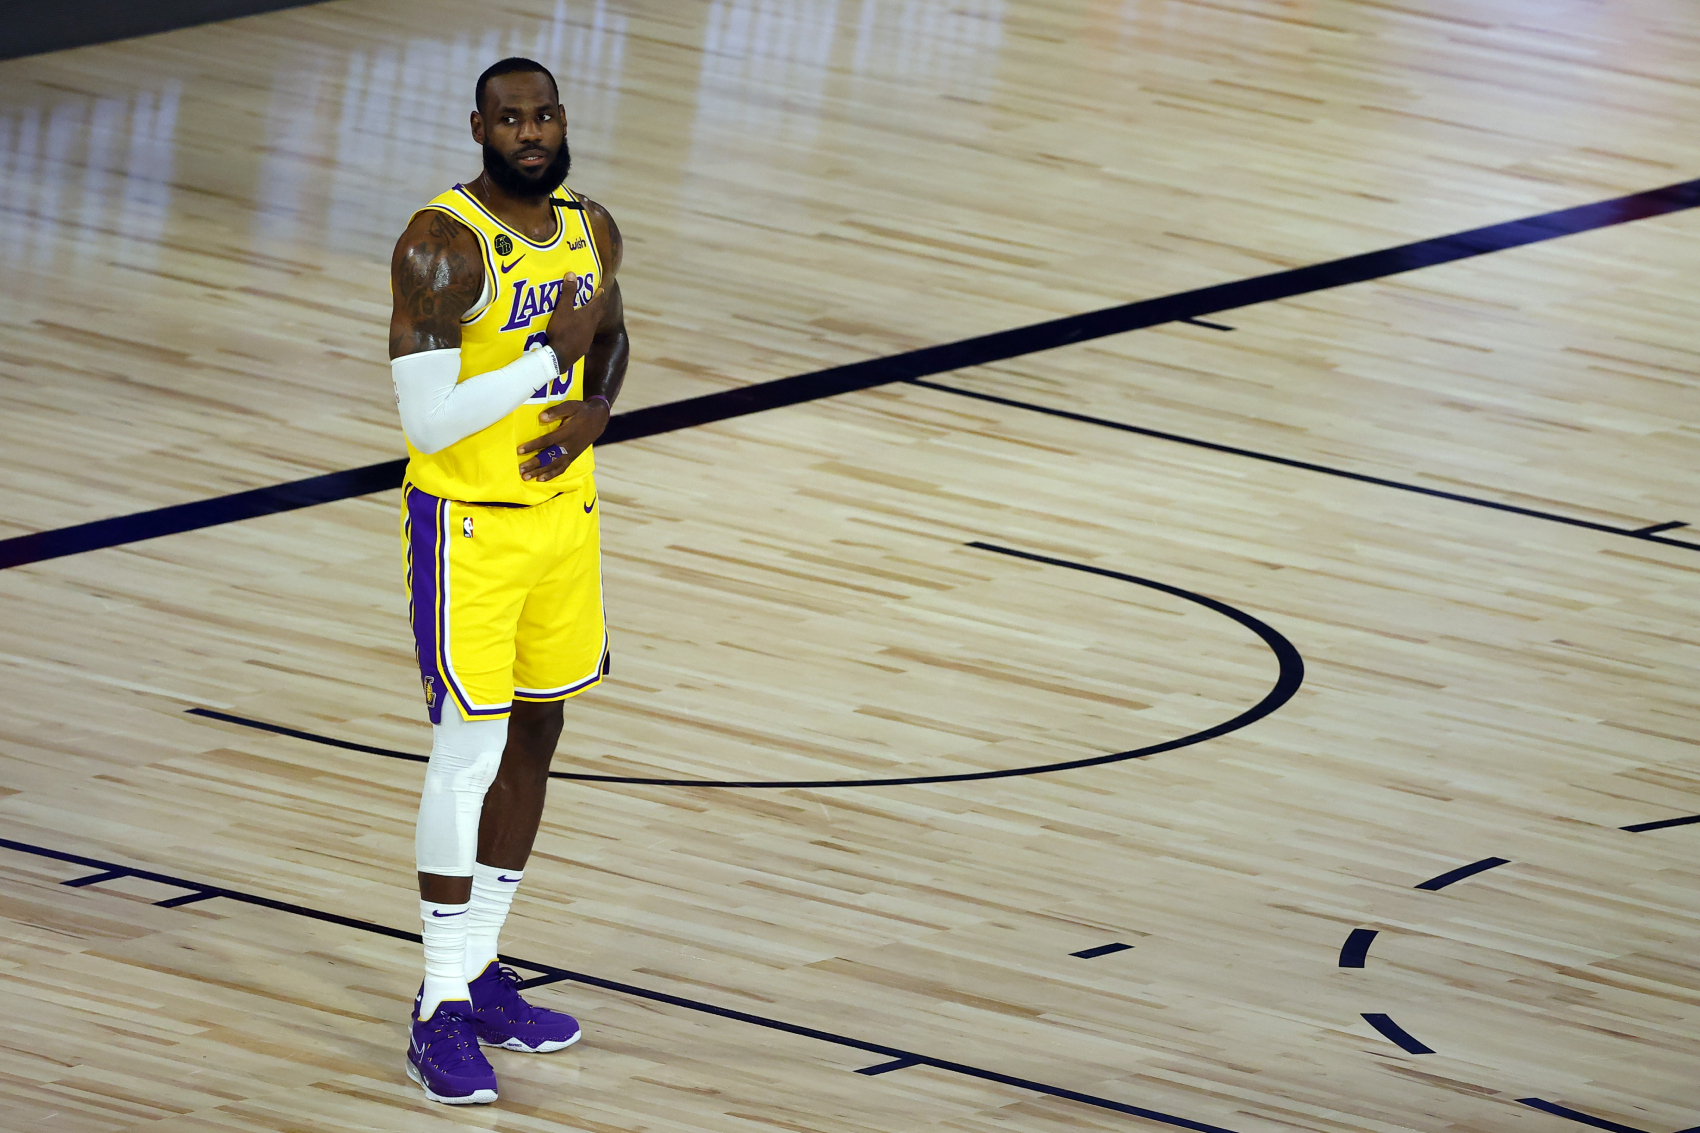 LeBron James and the Los Angeles Lakers have struggled in the NBA bubble. James might have just hinted at off-court problems too.